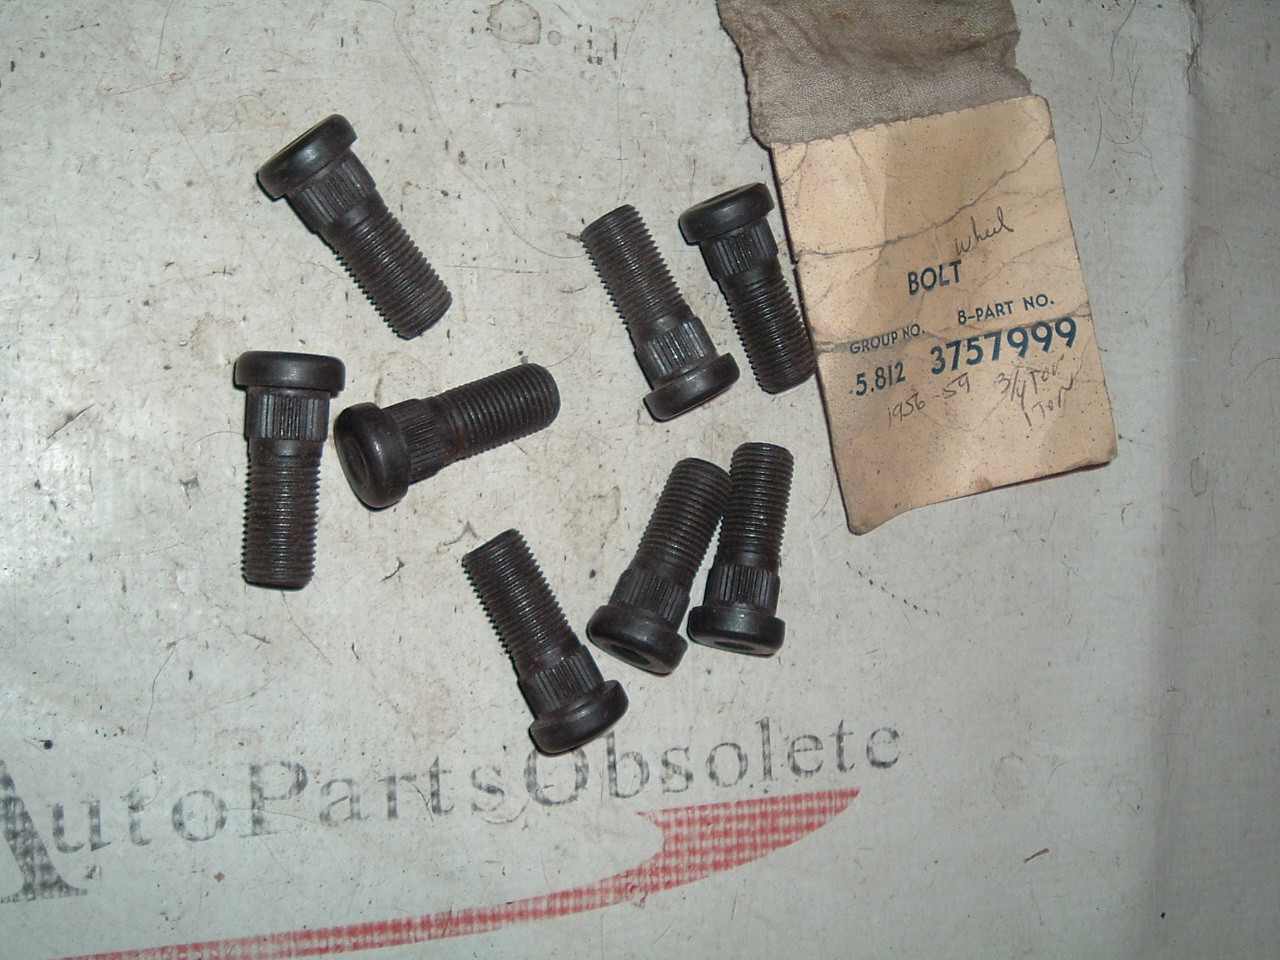 1960 1961 1962 1963 chevrolet truck wheel bolts nos gm # 3757999 (z 3757999)